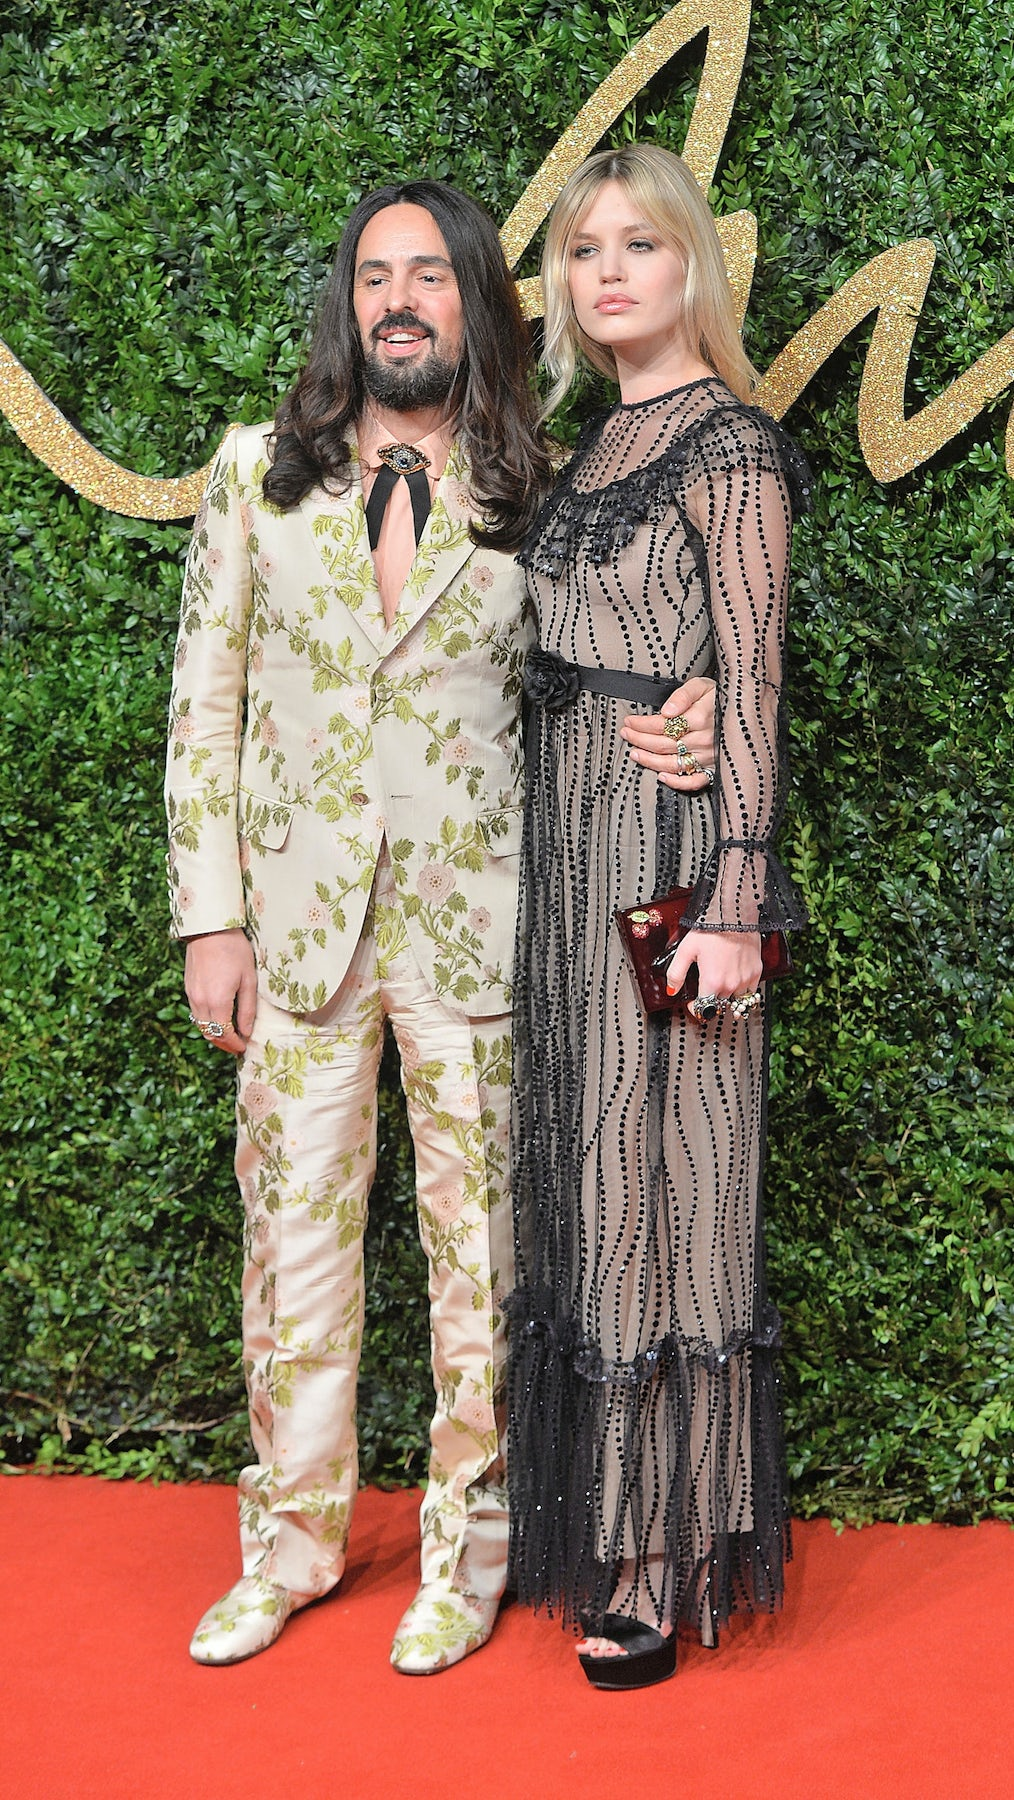 Alessandro Michele and Georgia Jagger at the 2015 British Fashion Awards | Source: Courtesy